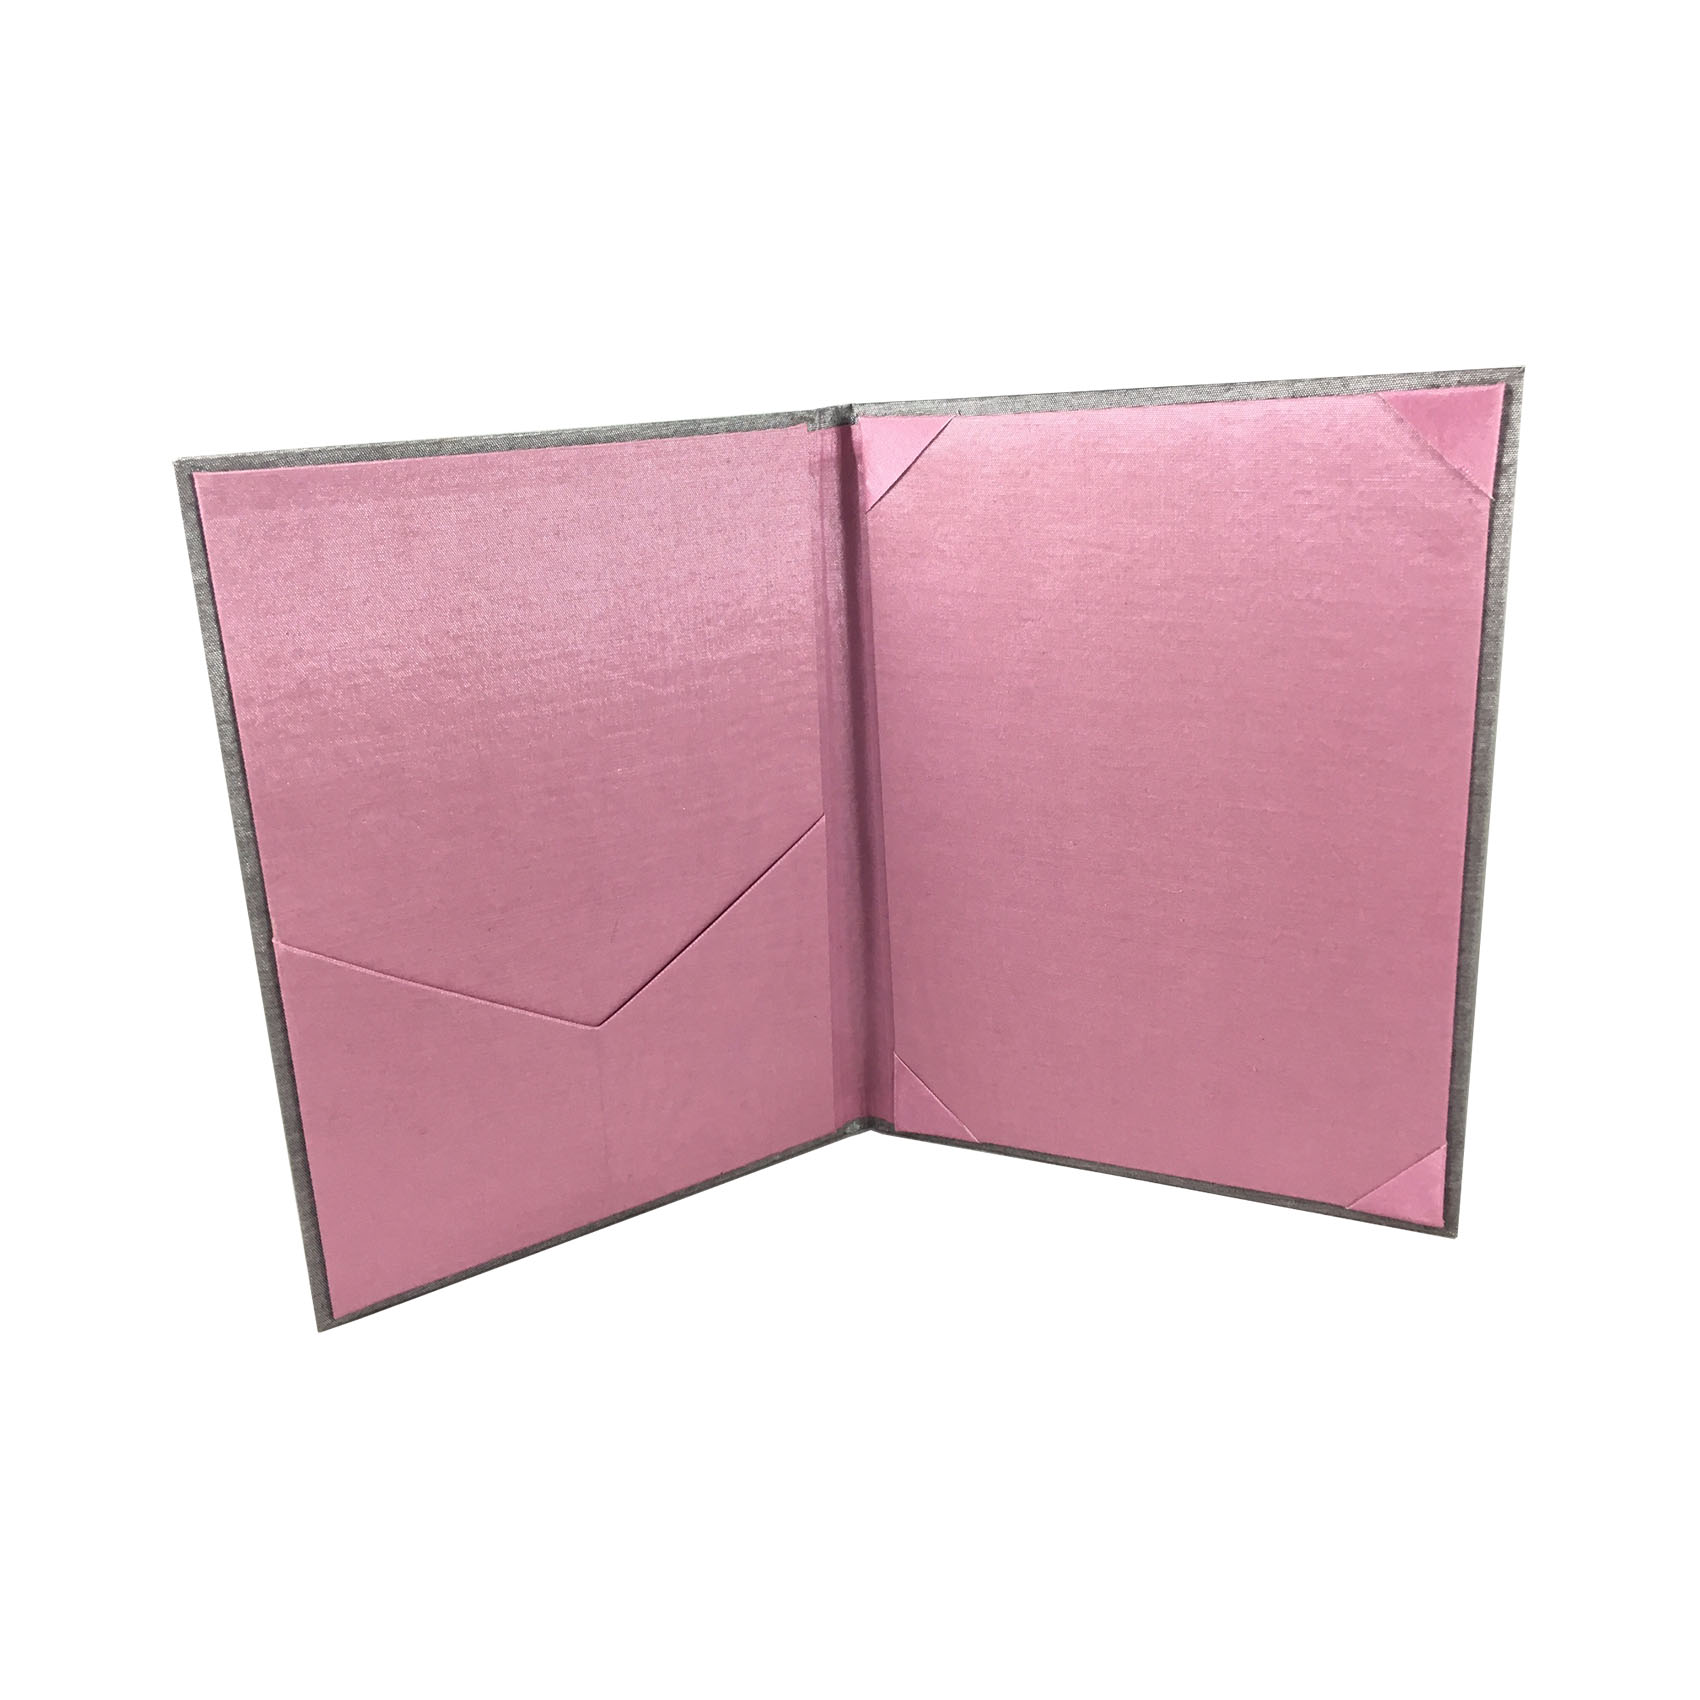 Wedding Invitation Folders With Pocket: Foil Stamped Wedding Invitation Silk Folder Pocket Holder